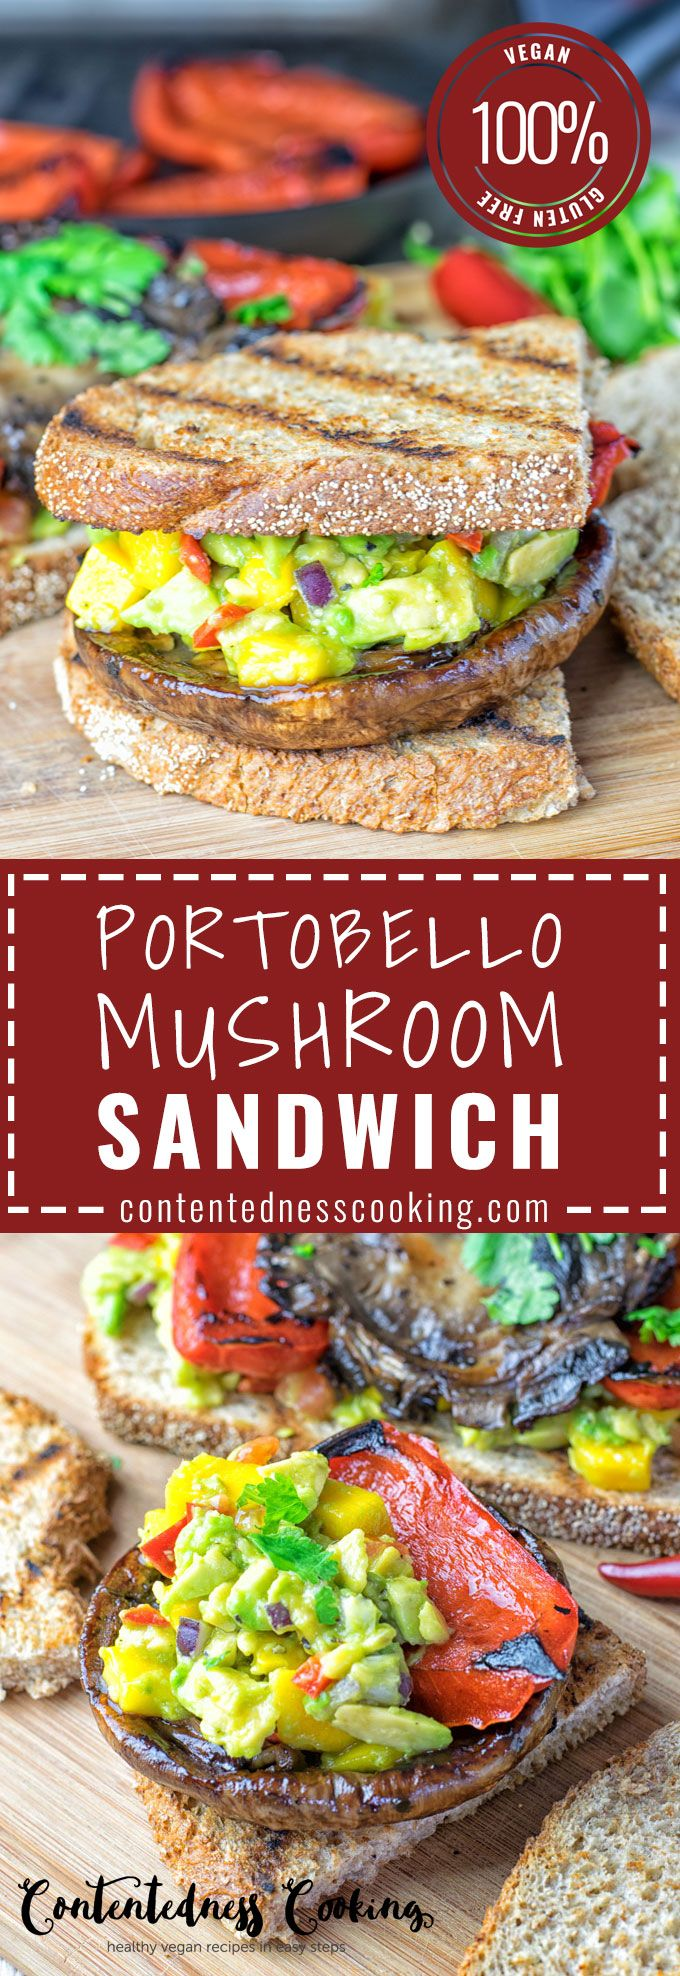 Portobello Mushroom Sandwich vegan, gluten free so delicious for dinner or lunch. So easy to make with roasted pepper and guacamole. Perfect to take along to work or any spring adventure that you plan.